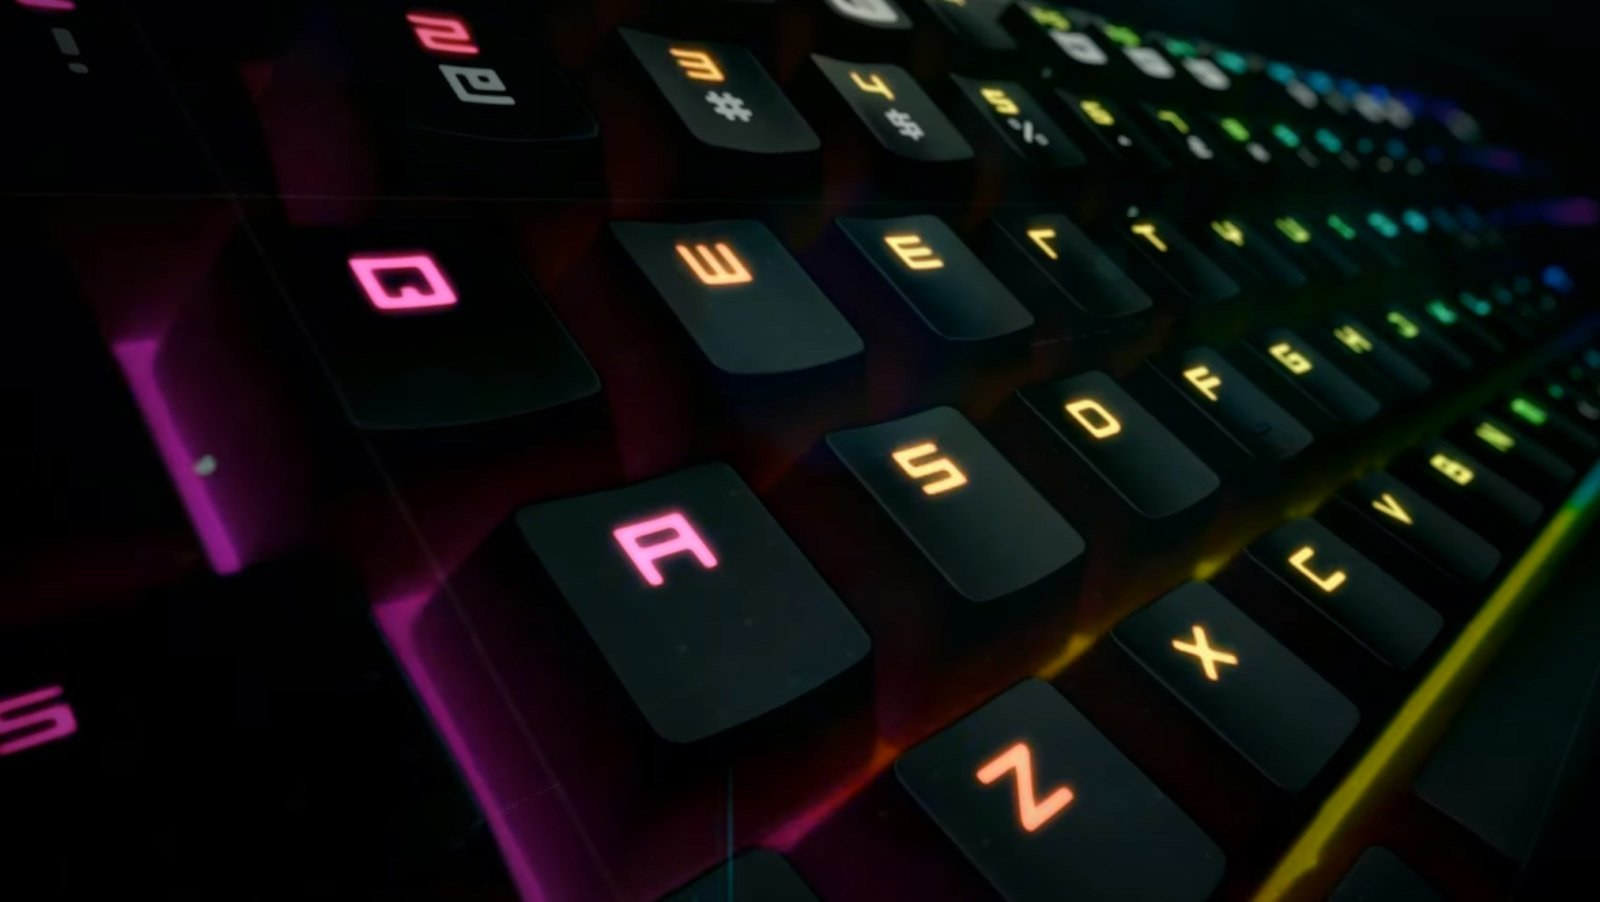 Asia Gaming Summit Taiwan looks at technology and esports